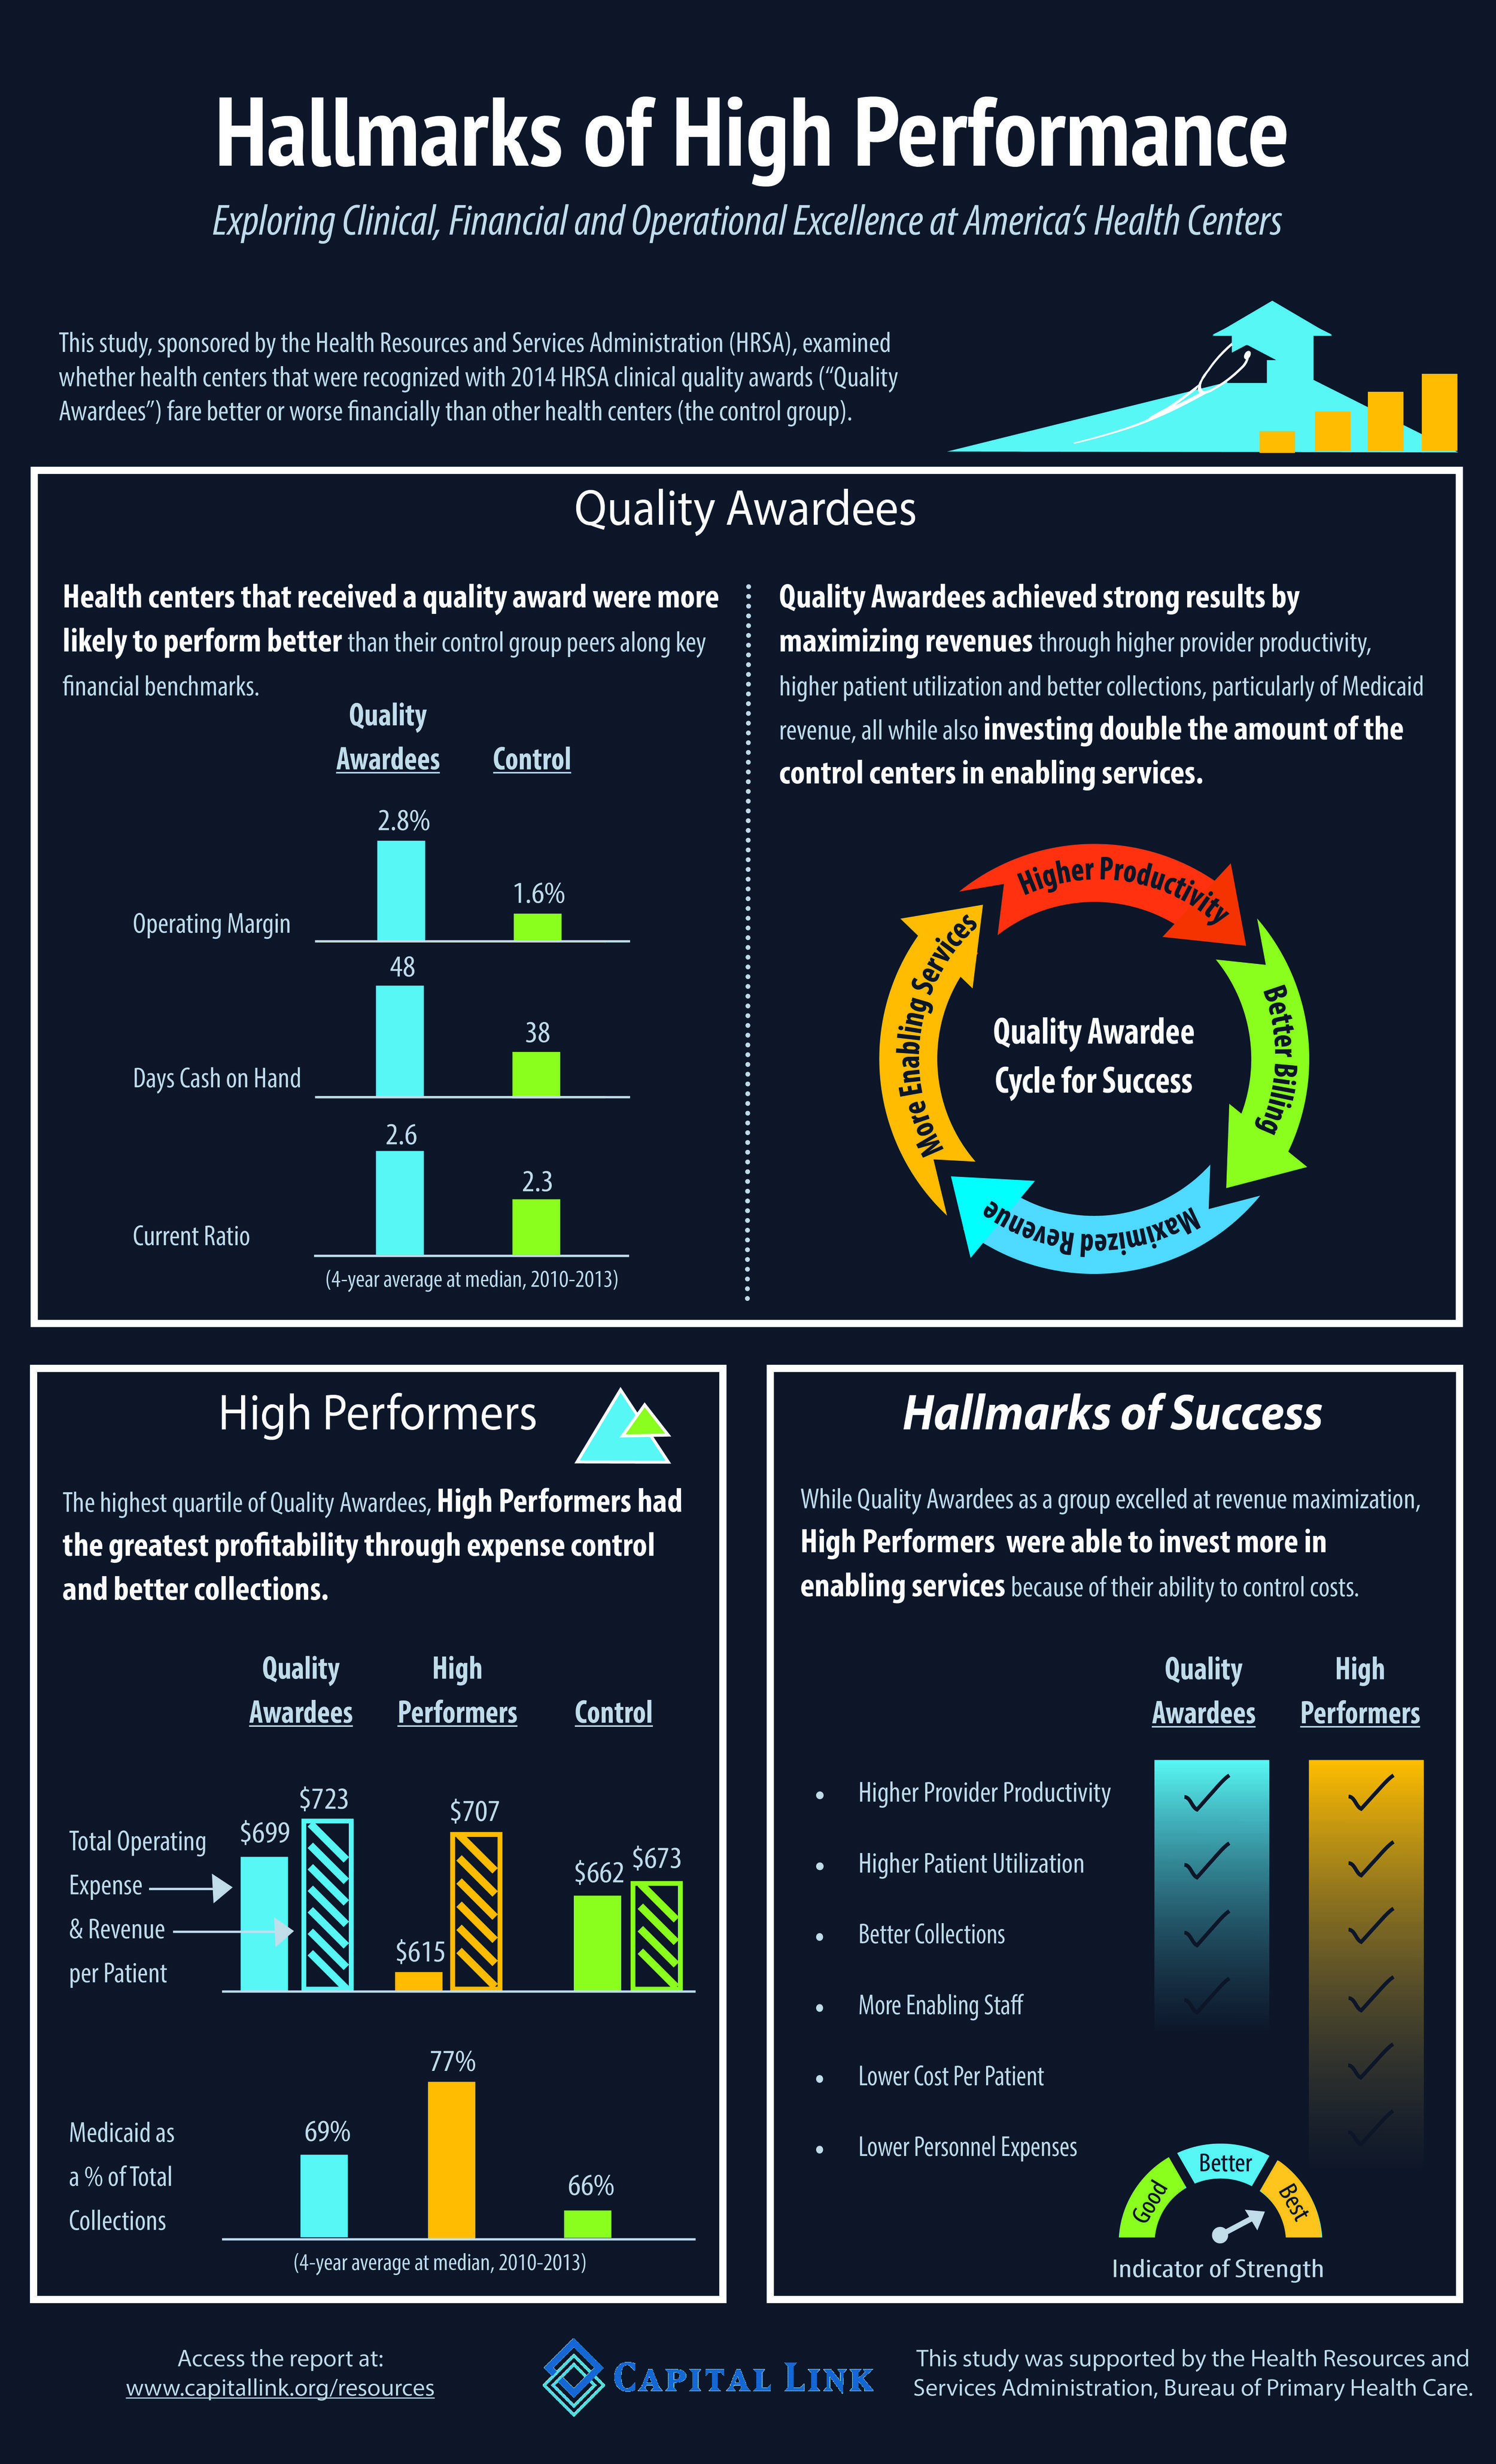 Hallmarks of High Performance Infographic FINAL 2.1.18.jpg